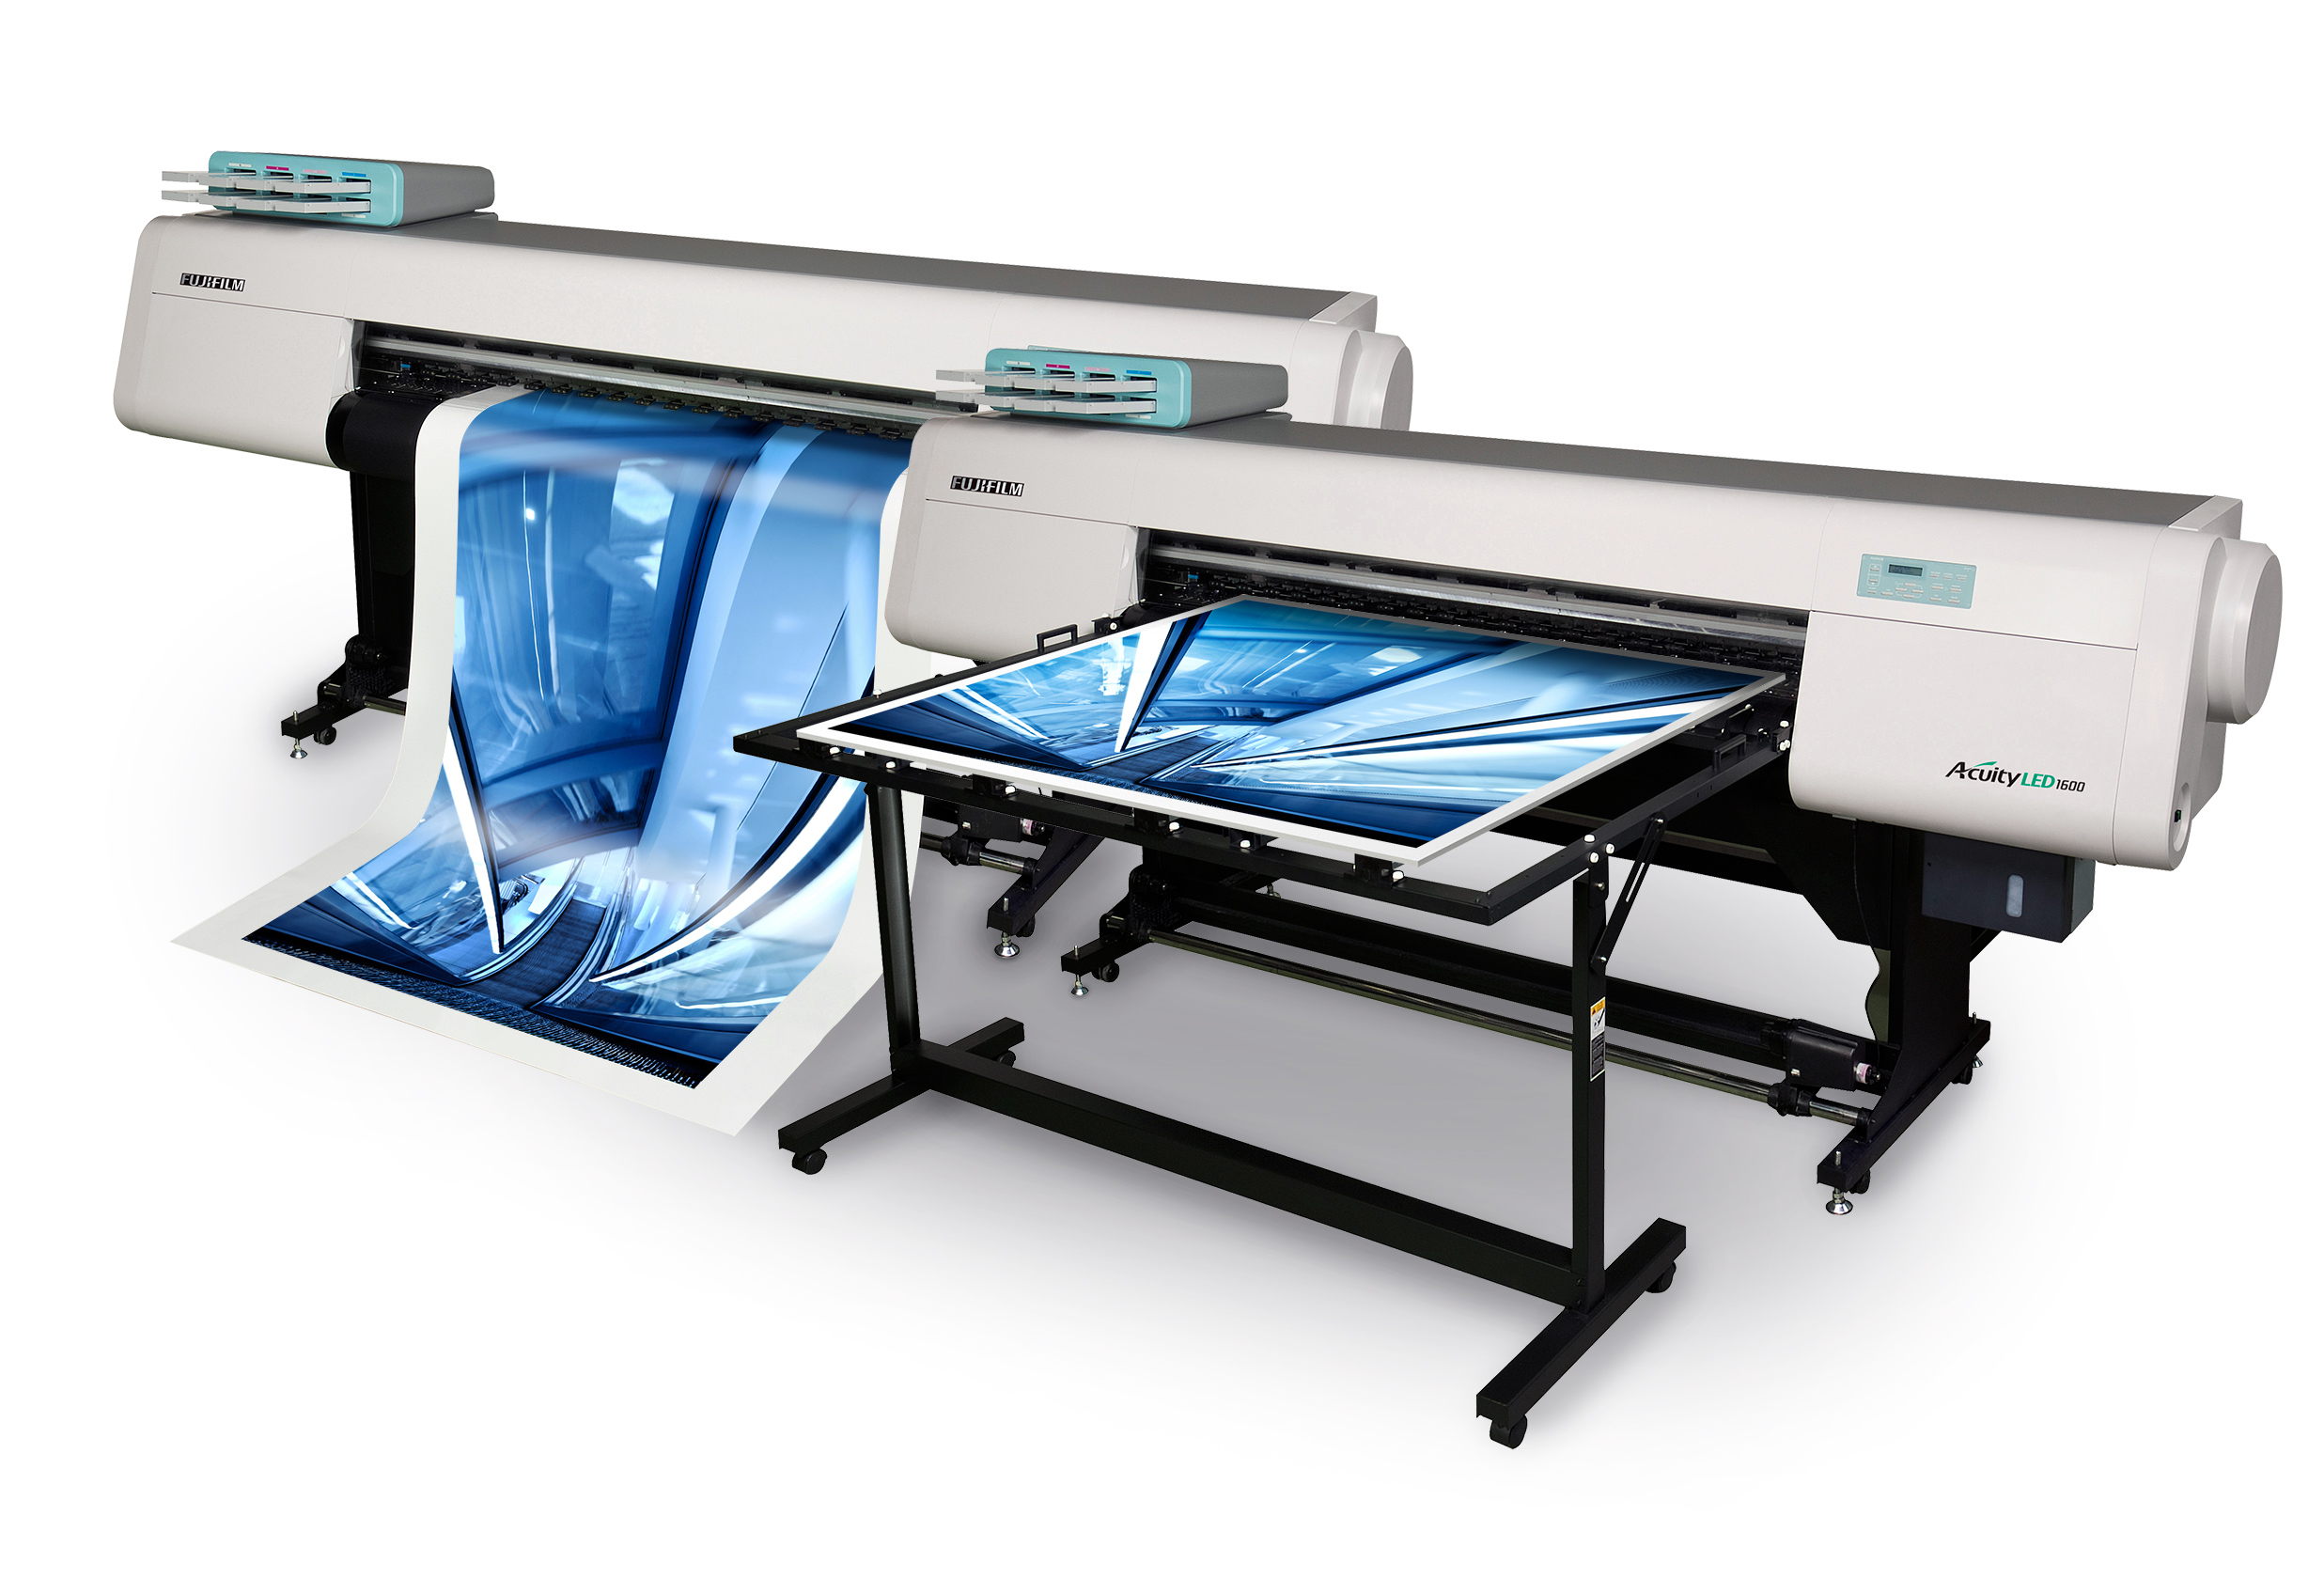 Acuity LED UV Printer